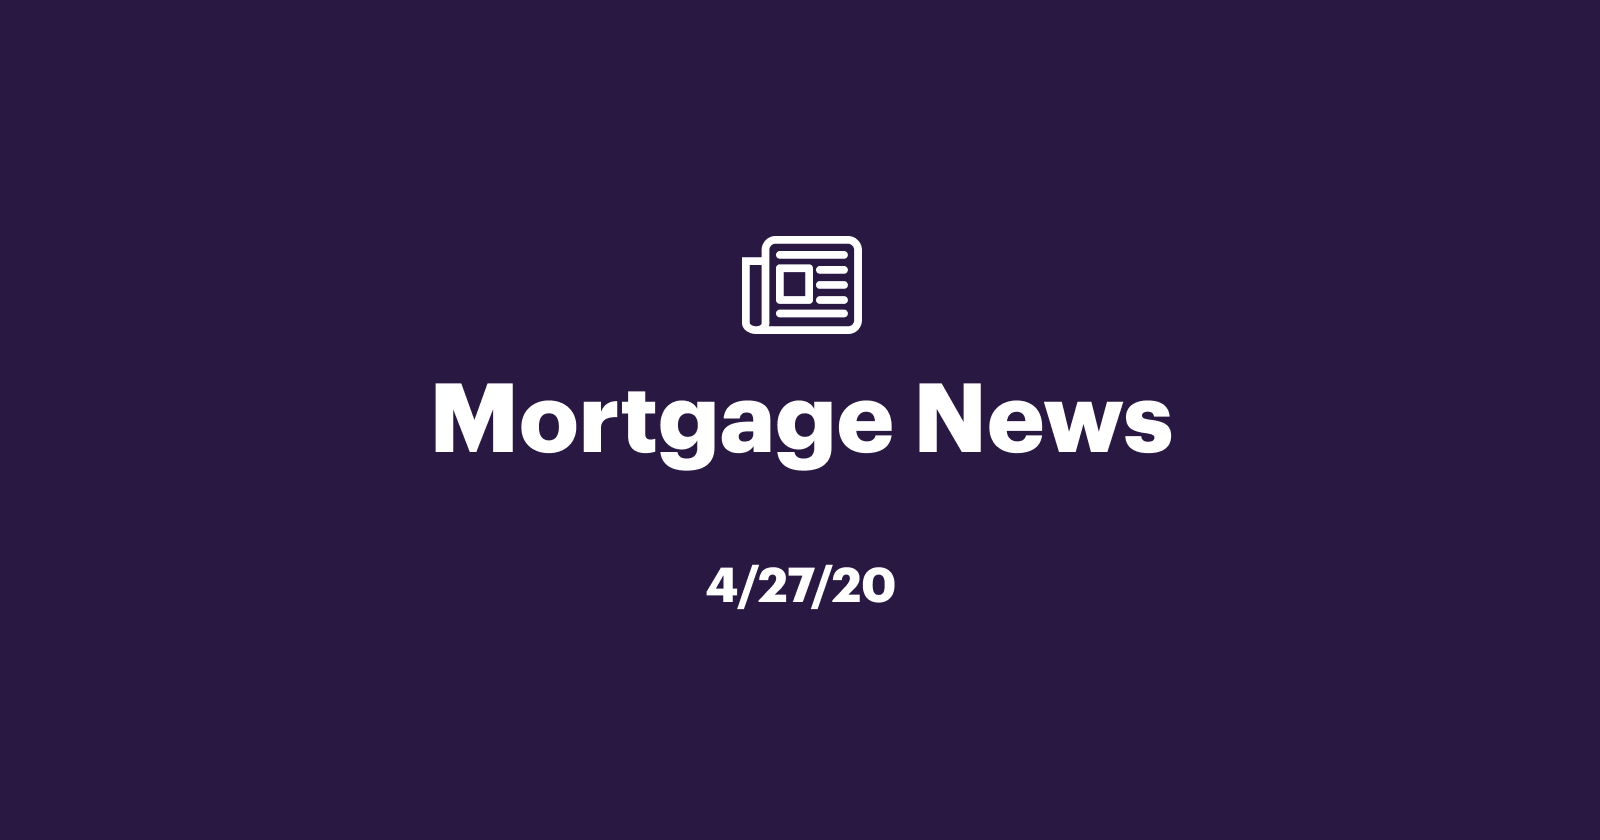 Mortgage News 4/27/20